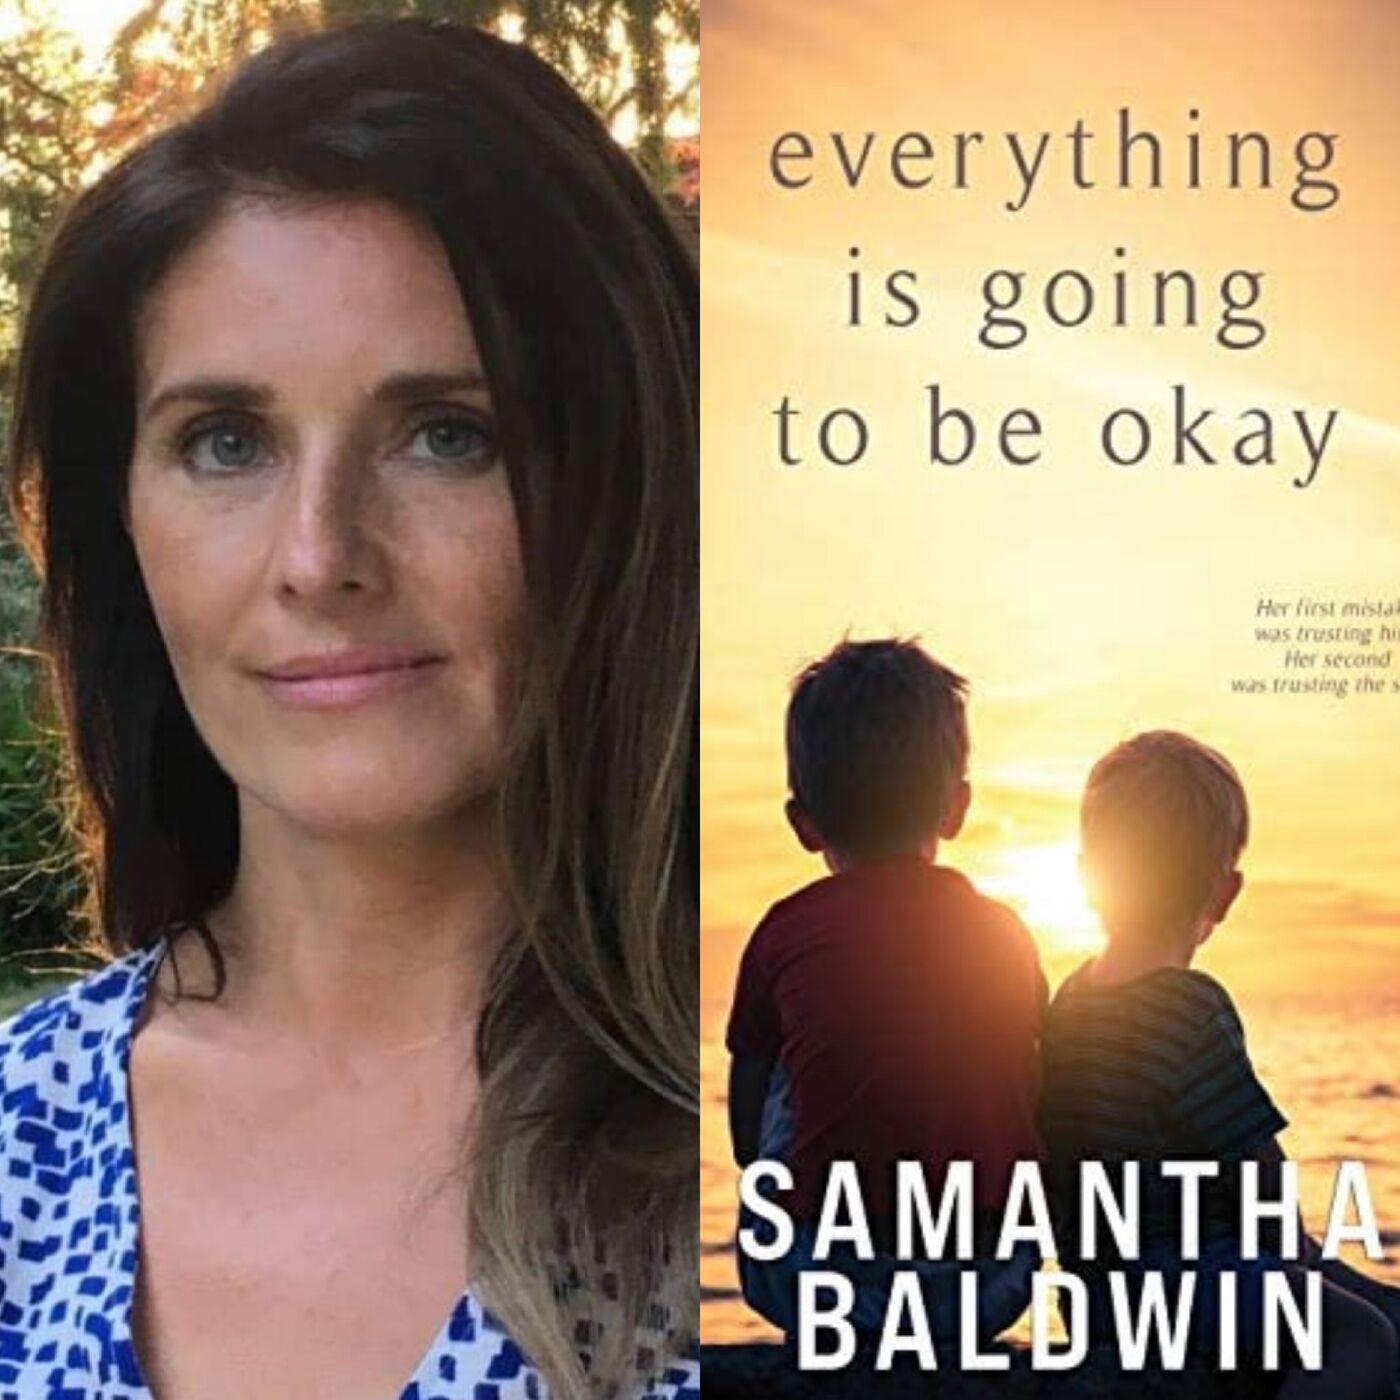 Samantha Baldwin, Author, Campaigning To Expose Family Court Corruption, Self Vindication And Making Changes To The Corrupt System